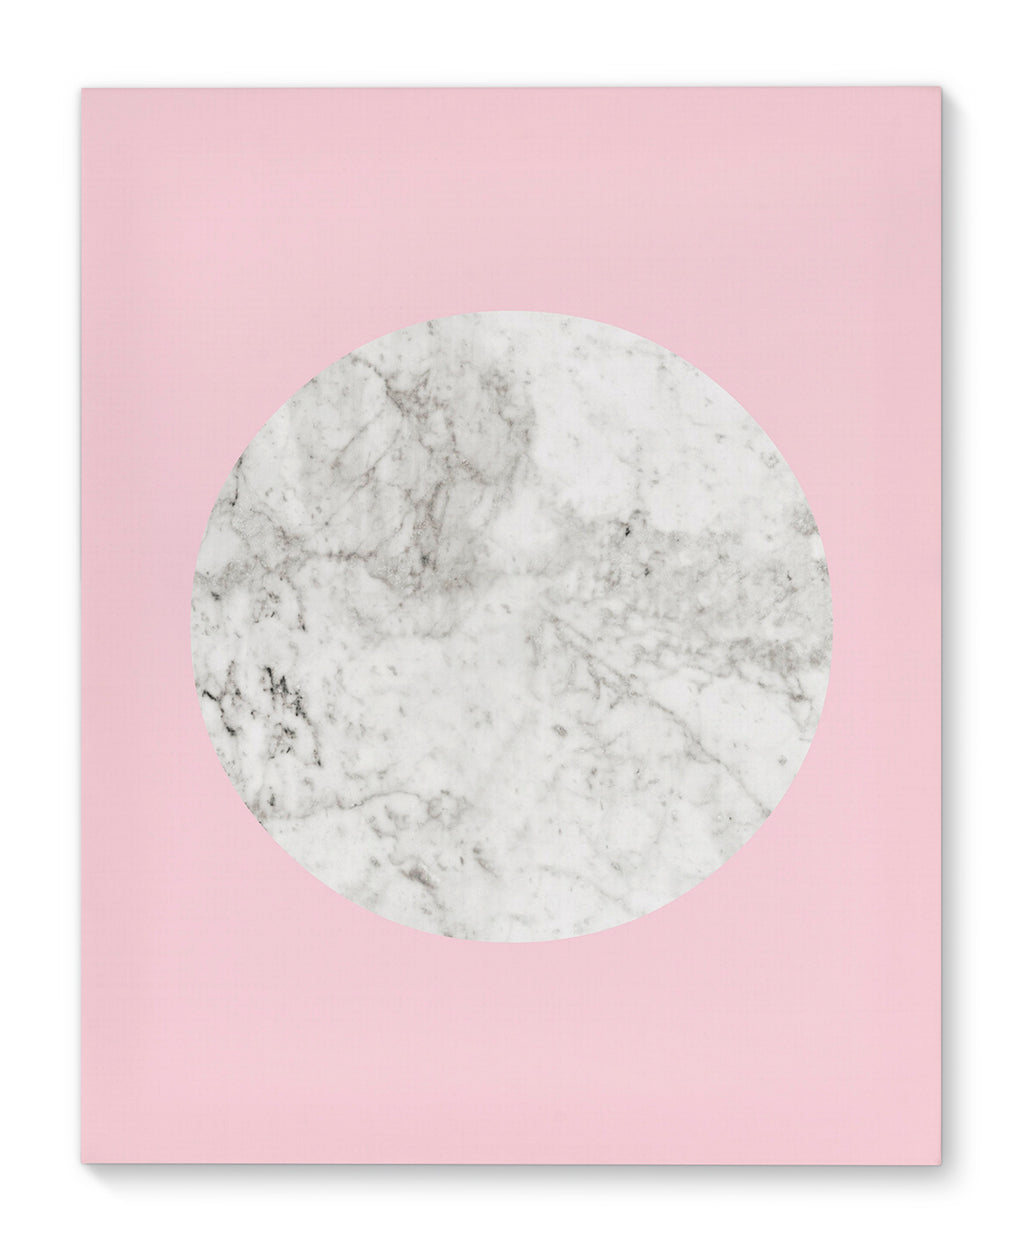 MARBLE PINK Canvas Art By Honeytree Prints